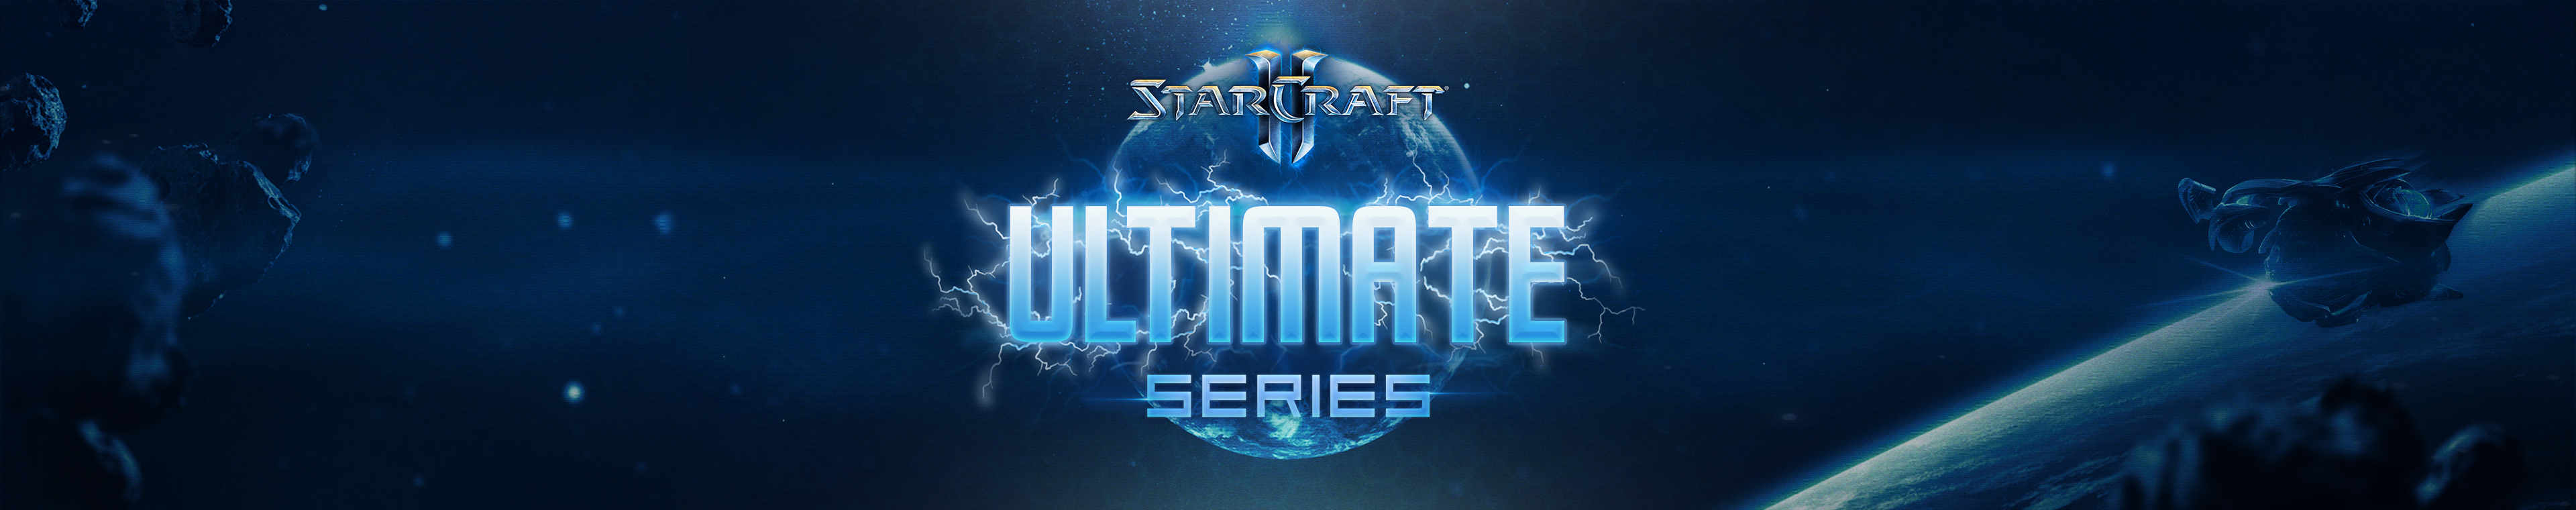 Ultimate Series 2018 Season 2 - Global Playoff